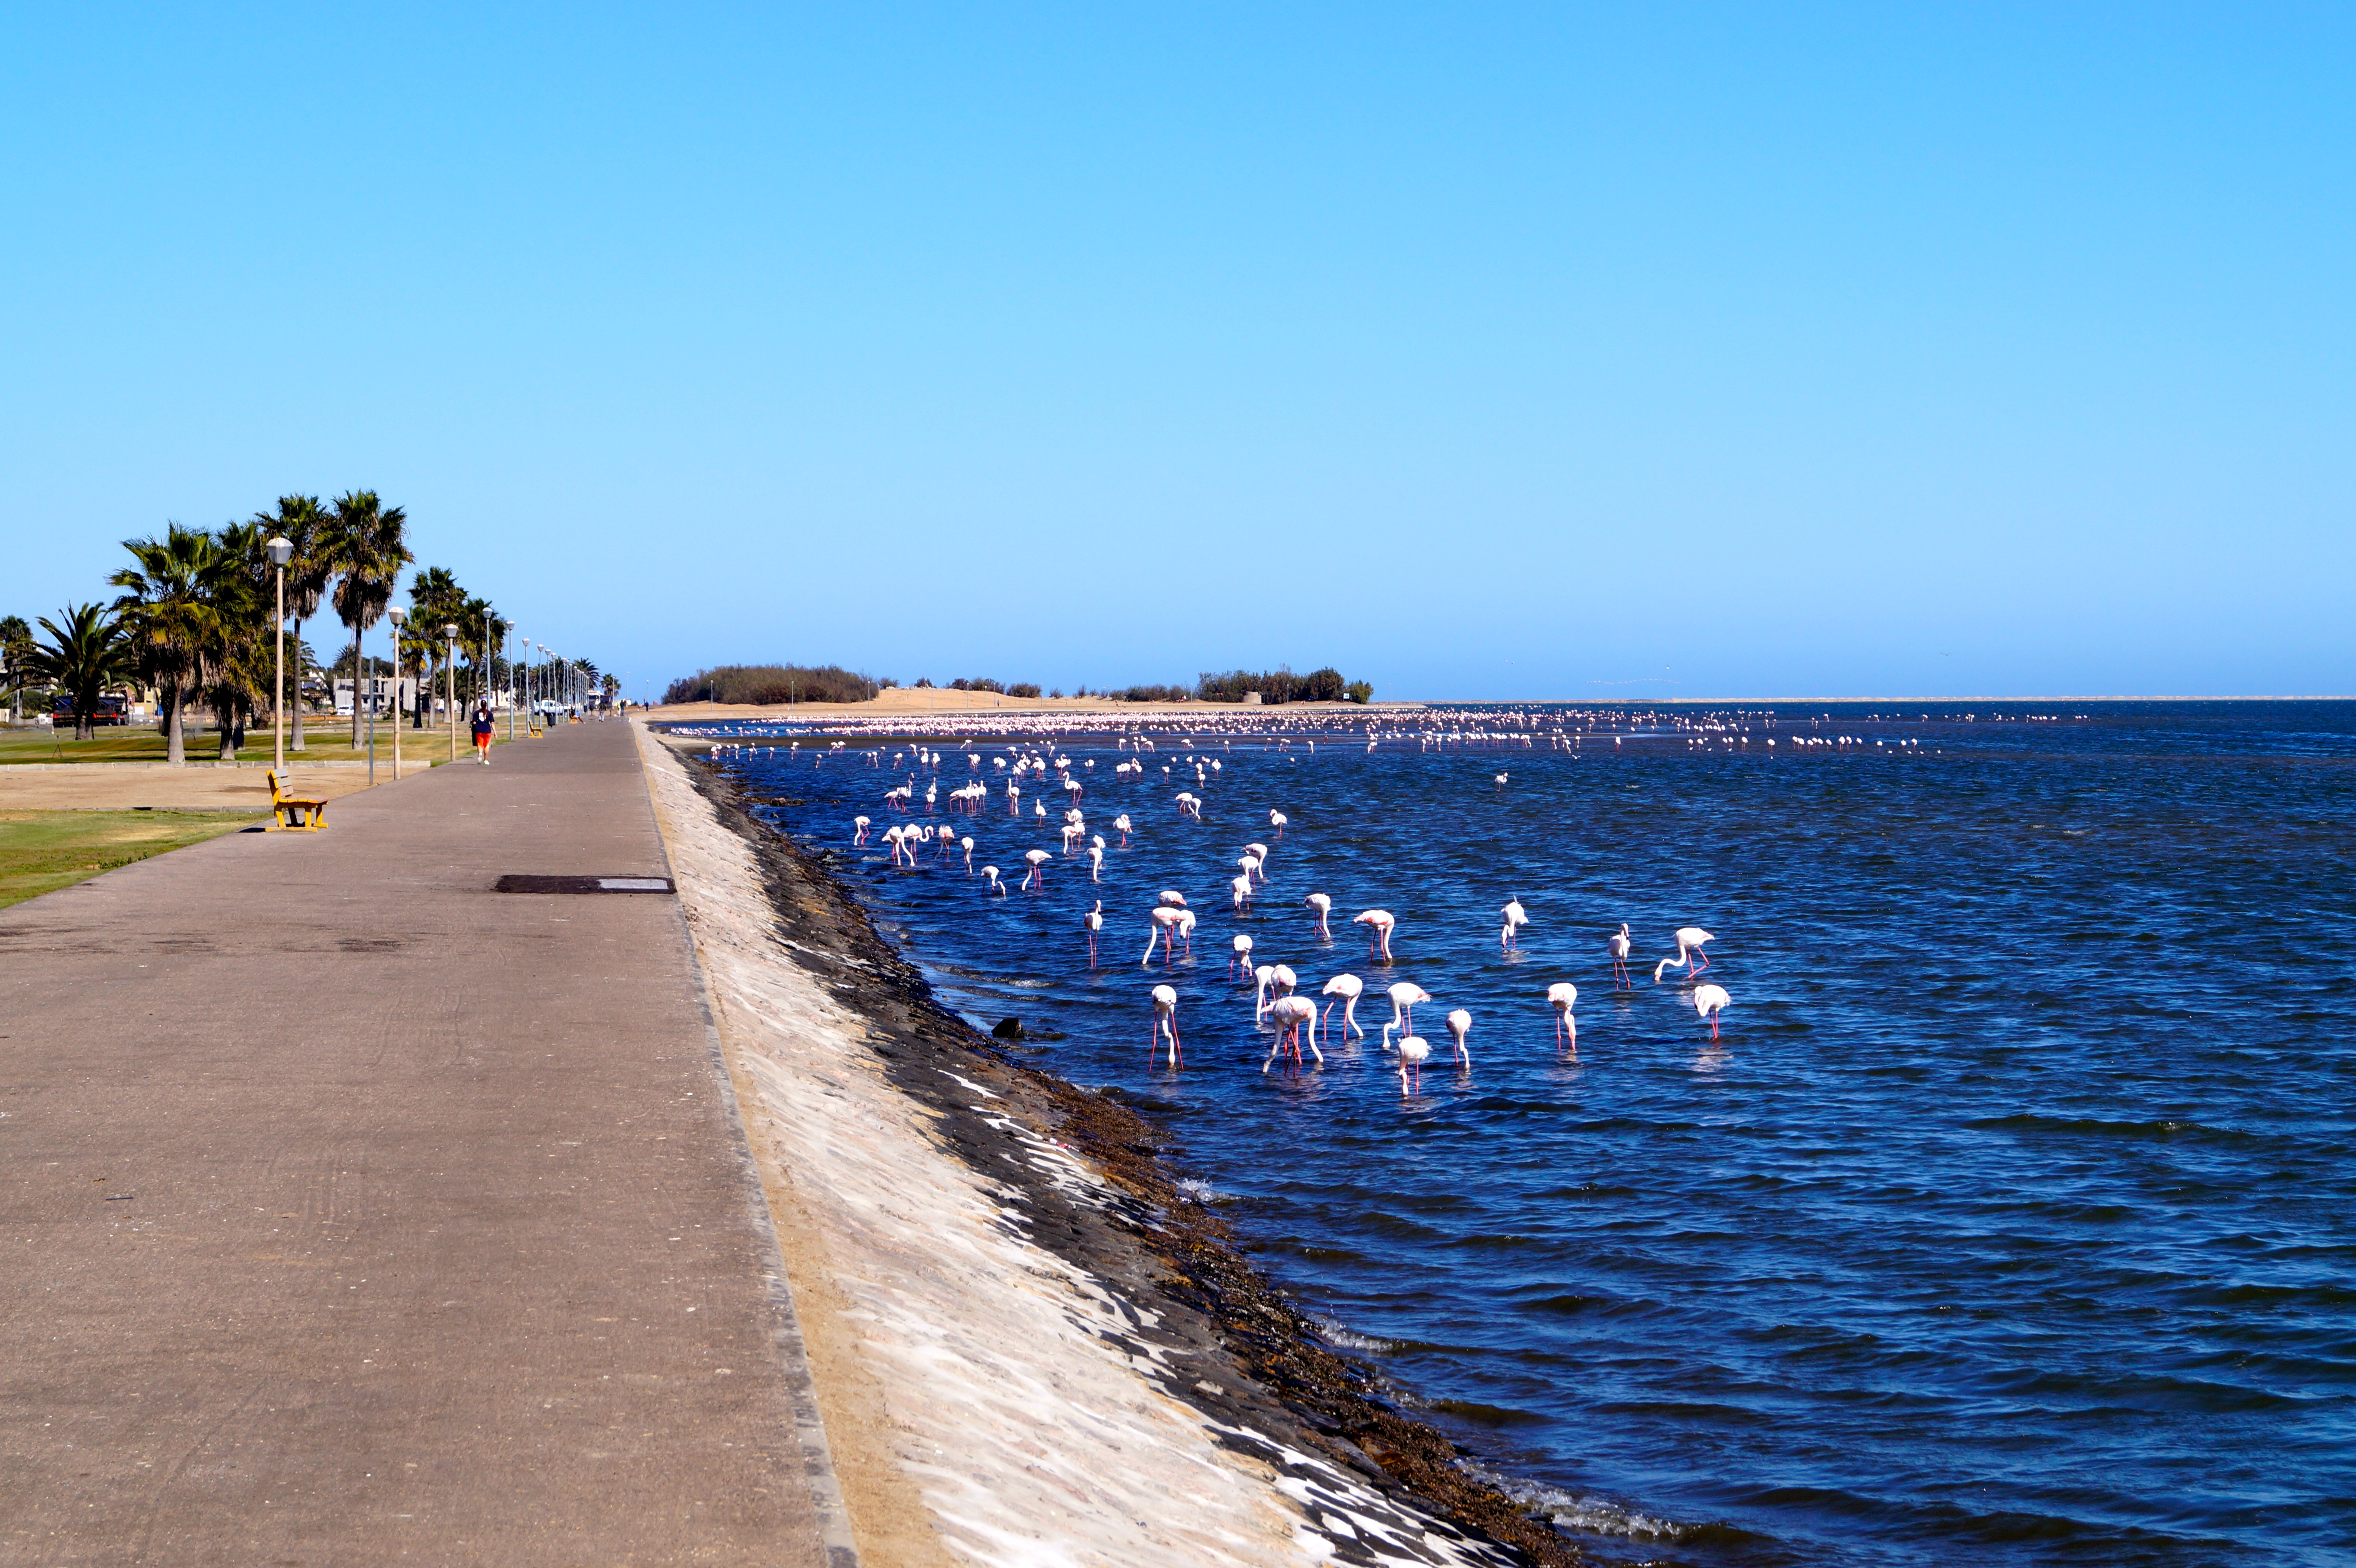 Lagoon Walvis Bay, Namibia – Walvis Bay and Swakopmund | Travels Of A Flight Attendant